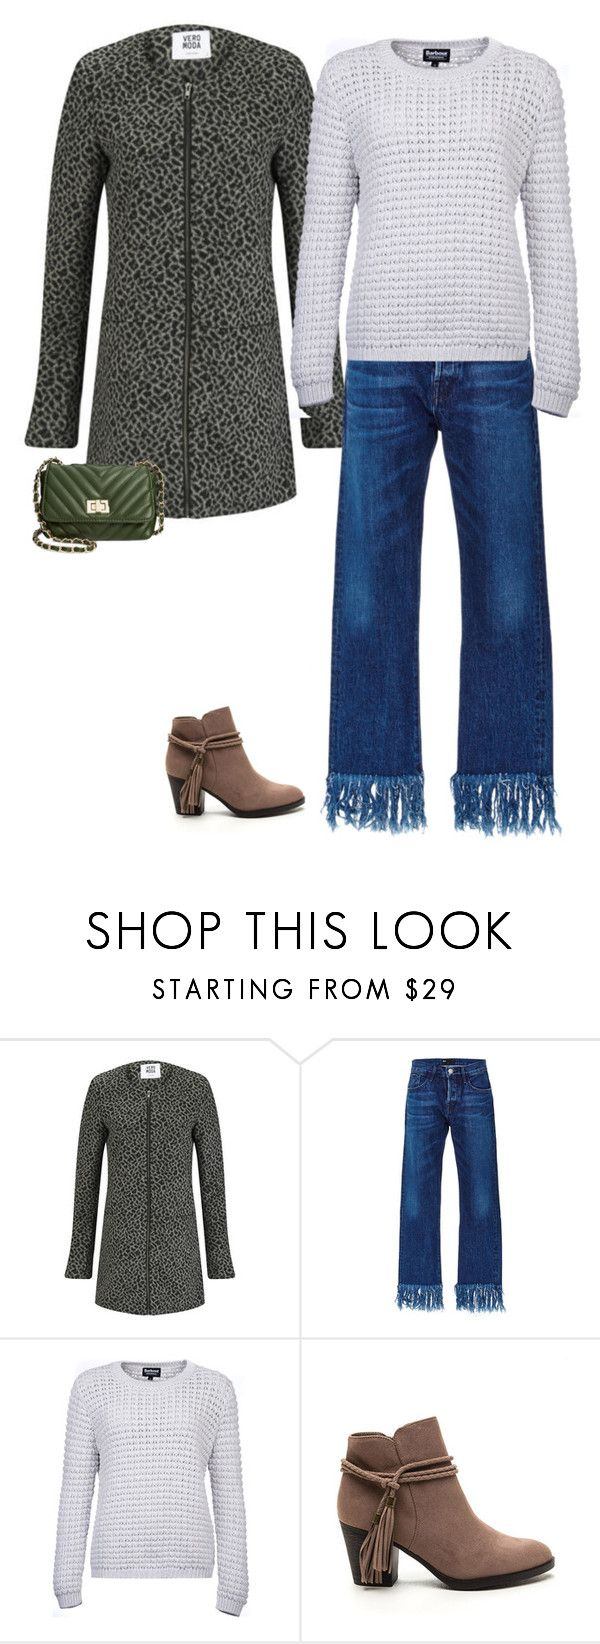 """""""Ready for the season (as I listen to #christmas music)"""" by brooklynbeatz ❤ liked on Polyvore featuring Vero Moda, 3x1, Barbour International, Steve Madden, fringe, animalprint, tassel and outfitonly"""